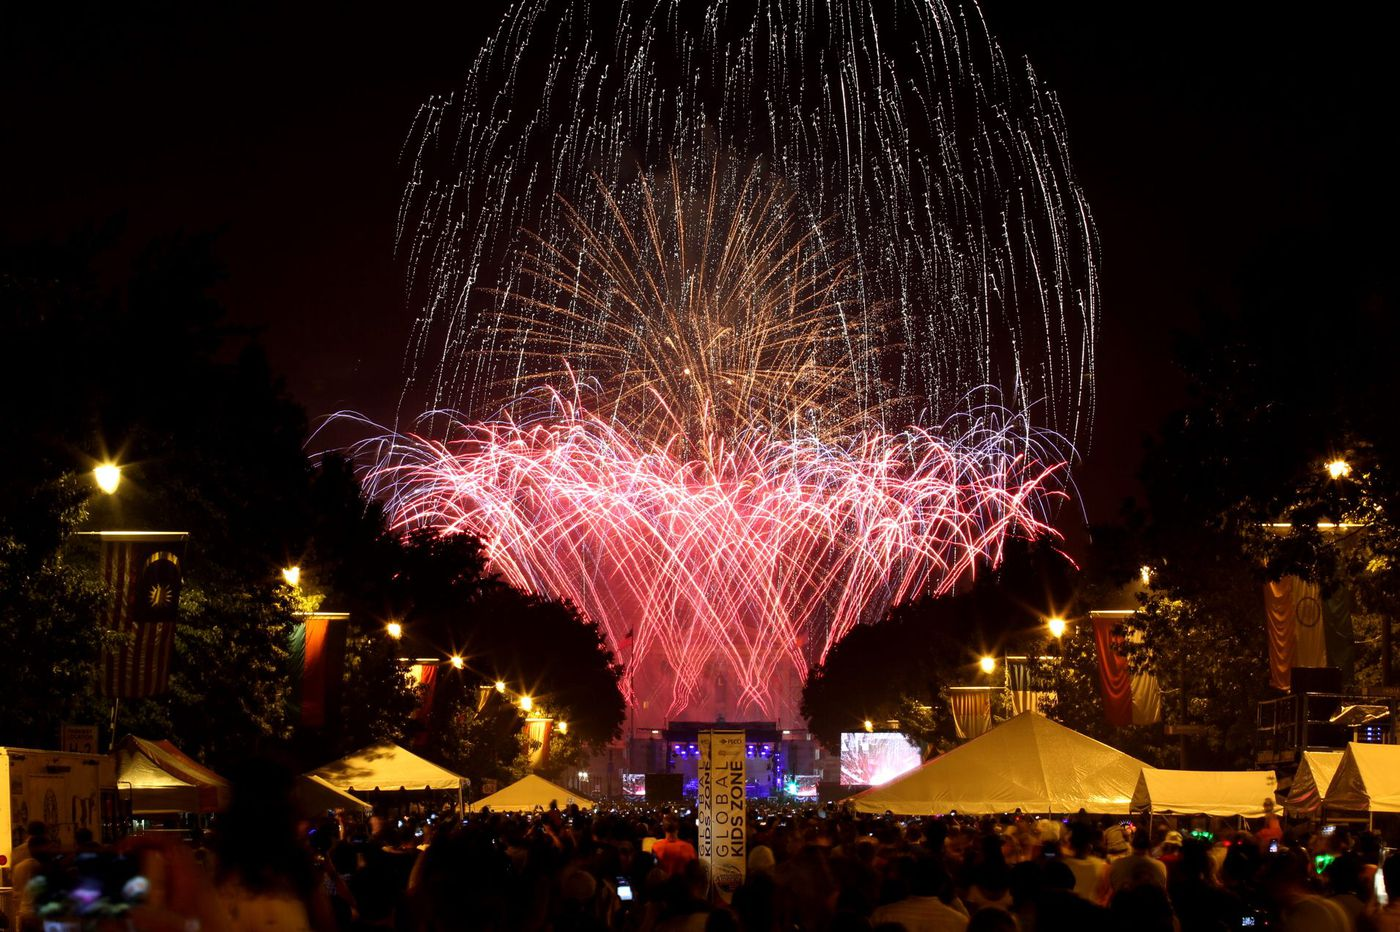 Fireworks on July Fourth: Where to watch them in and near Philadelphia